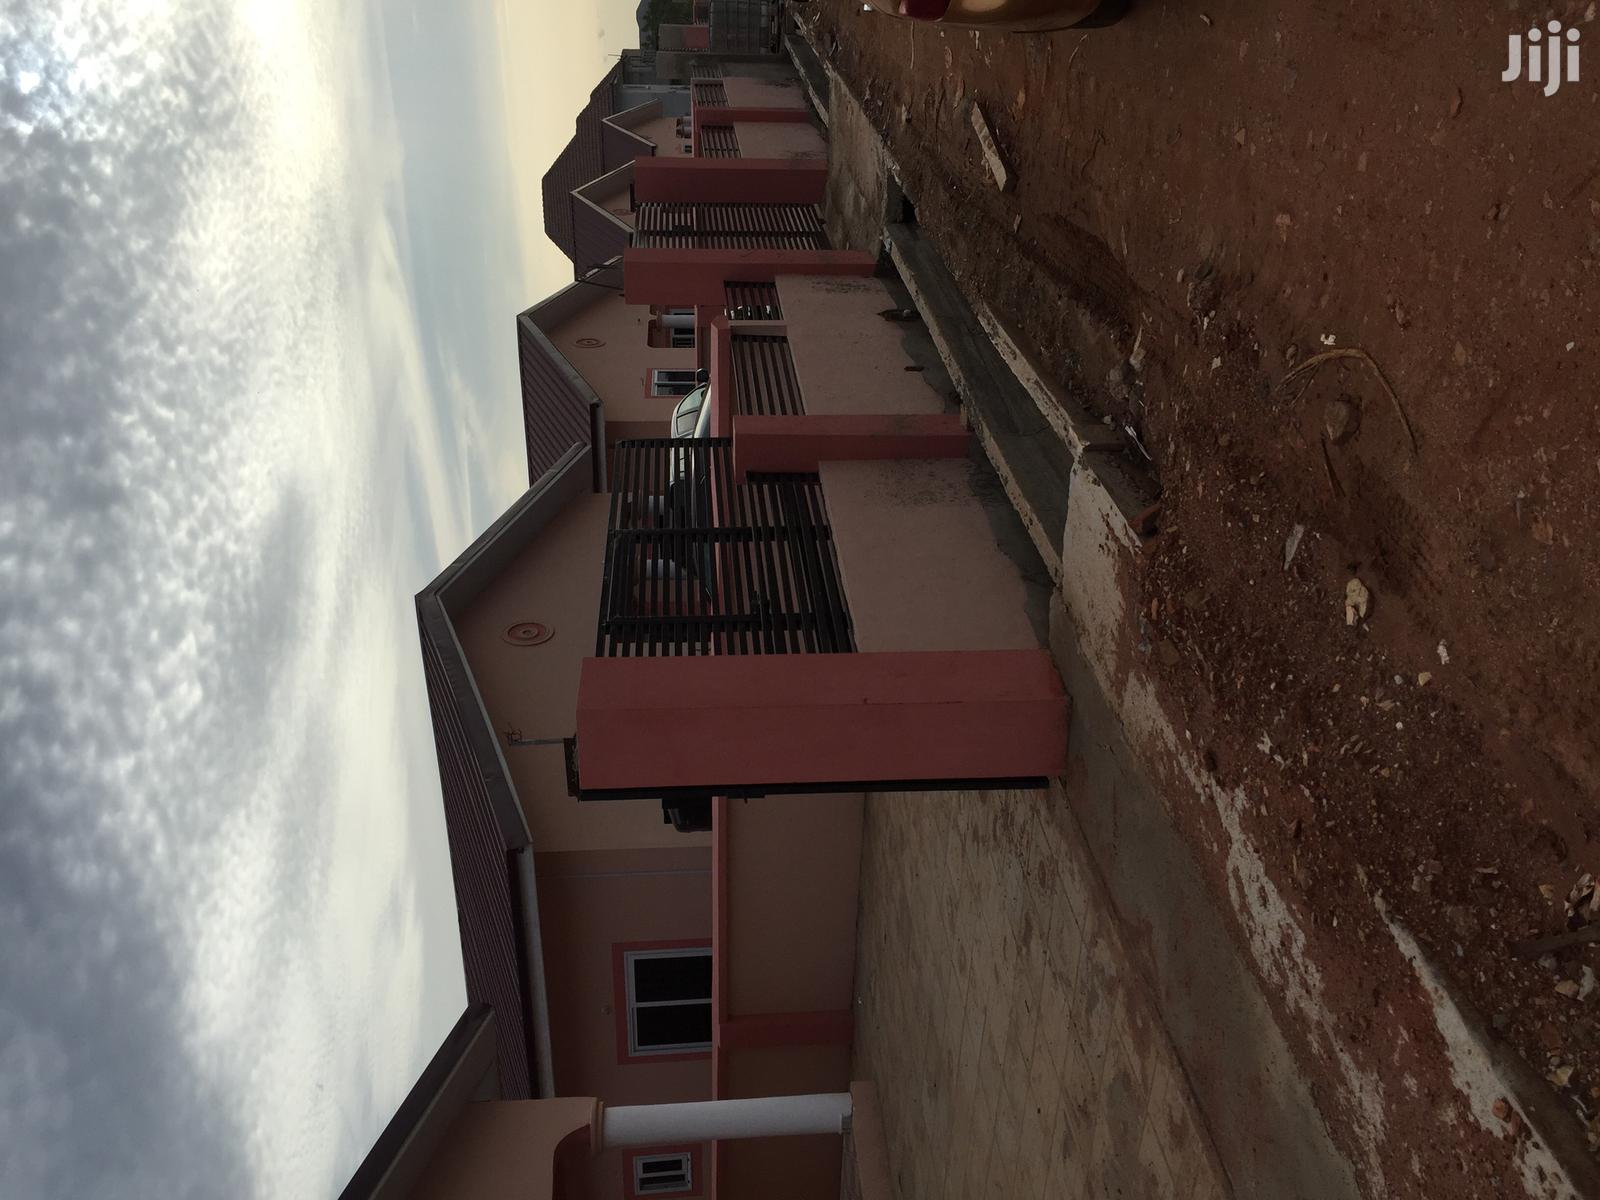 Executive 2/3bedhouses Now Selling | Houses & Apartments For Sale for sale in Tema Metropolitan, Greater Accra, Ghana